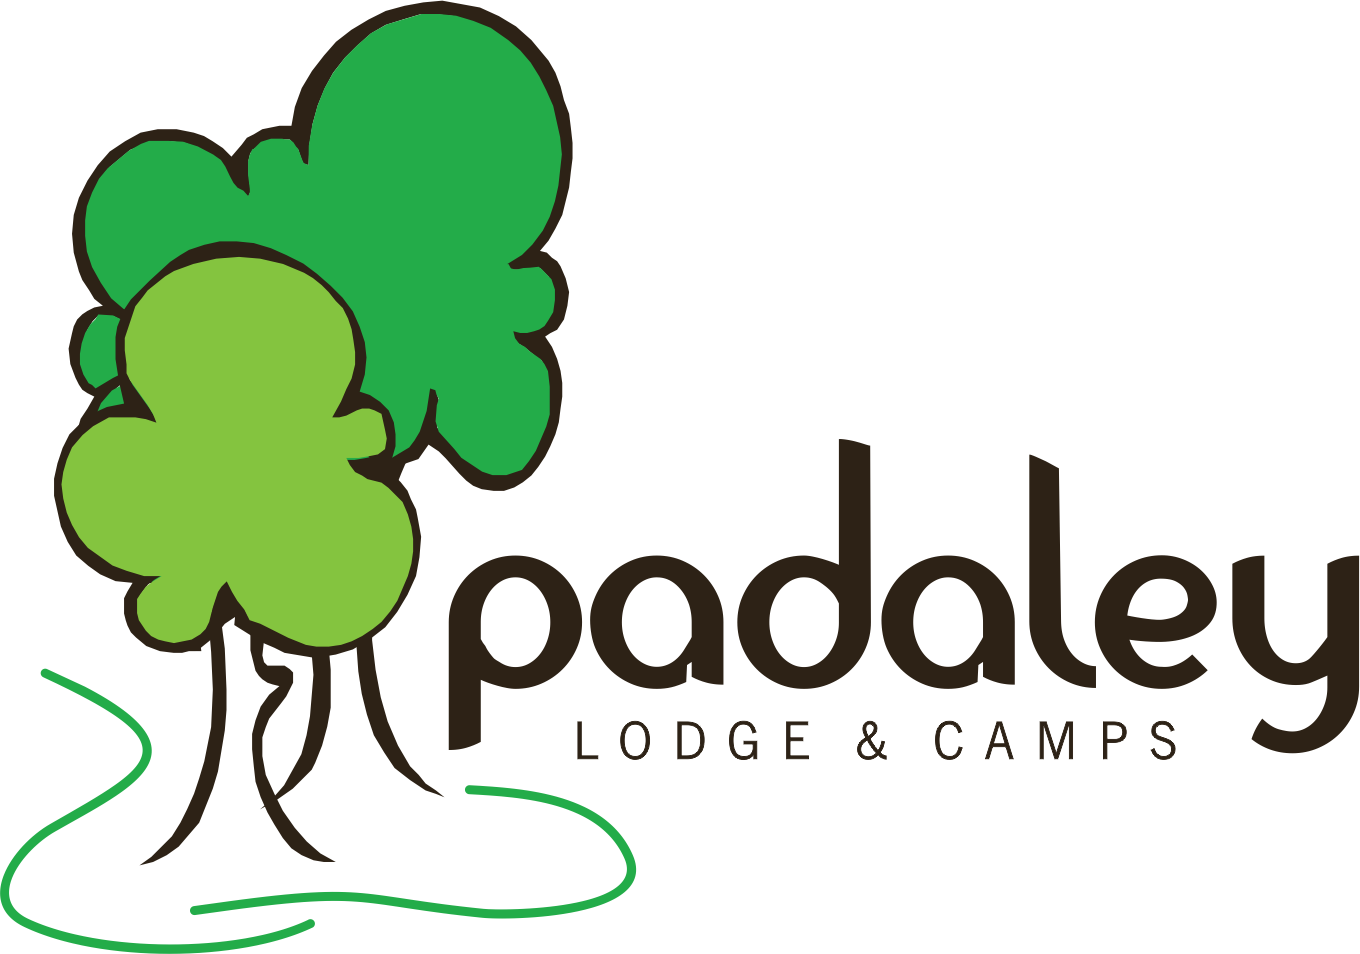 Padaley Lodge and Camps accredited facility